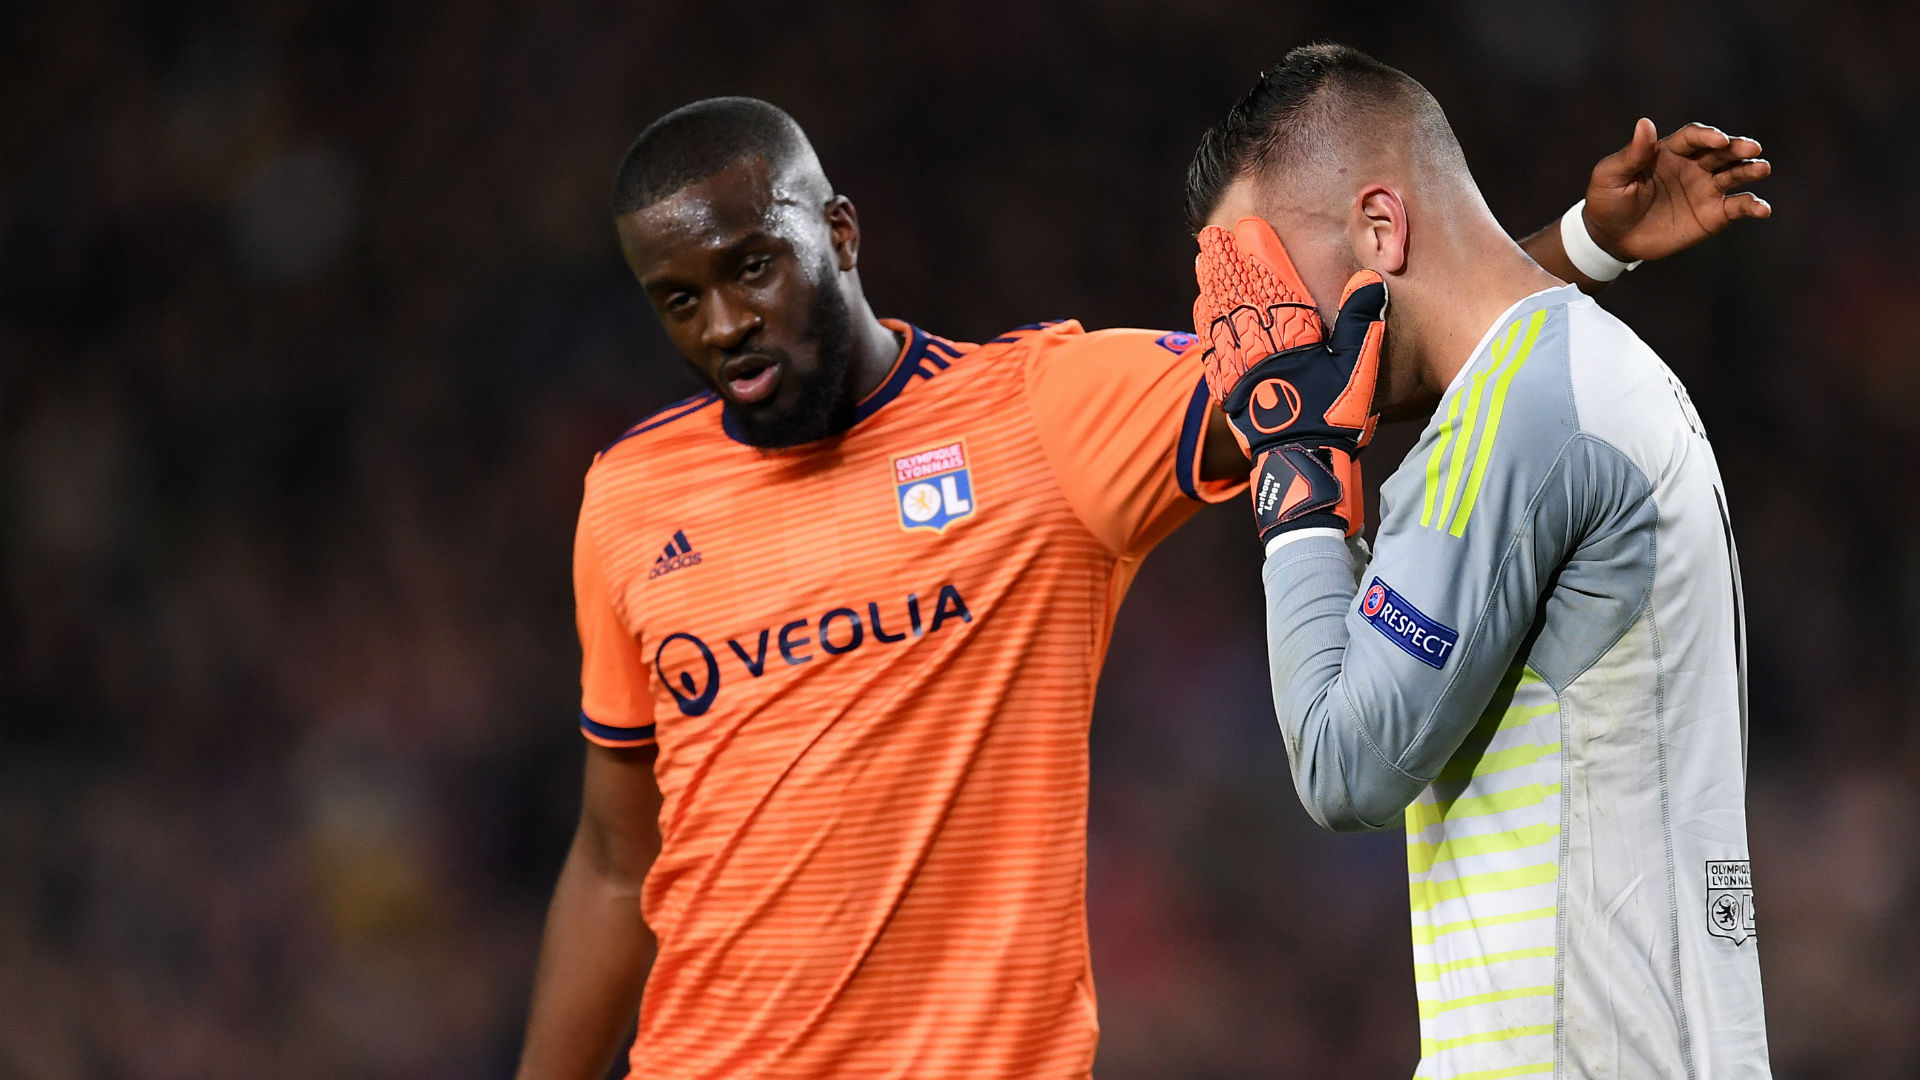 Lyon star Ndombele aware of transfer talk